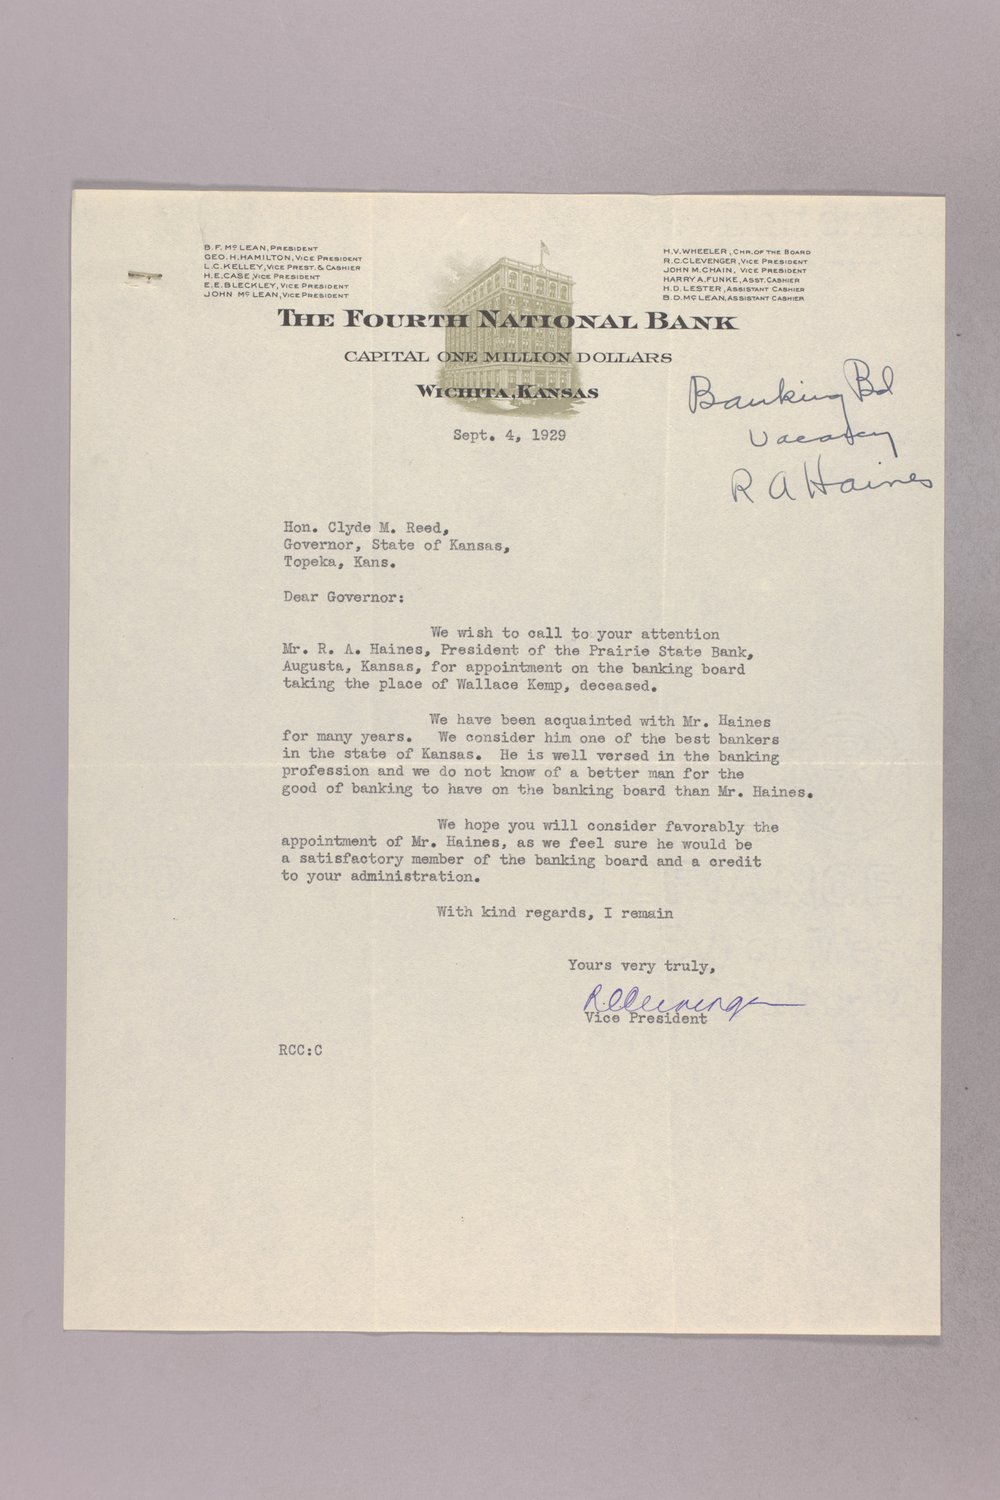 Governor Clyde M. Reed correspondence, Banking Board - 4